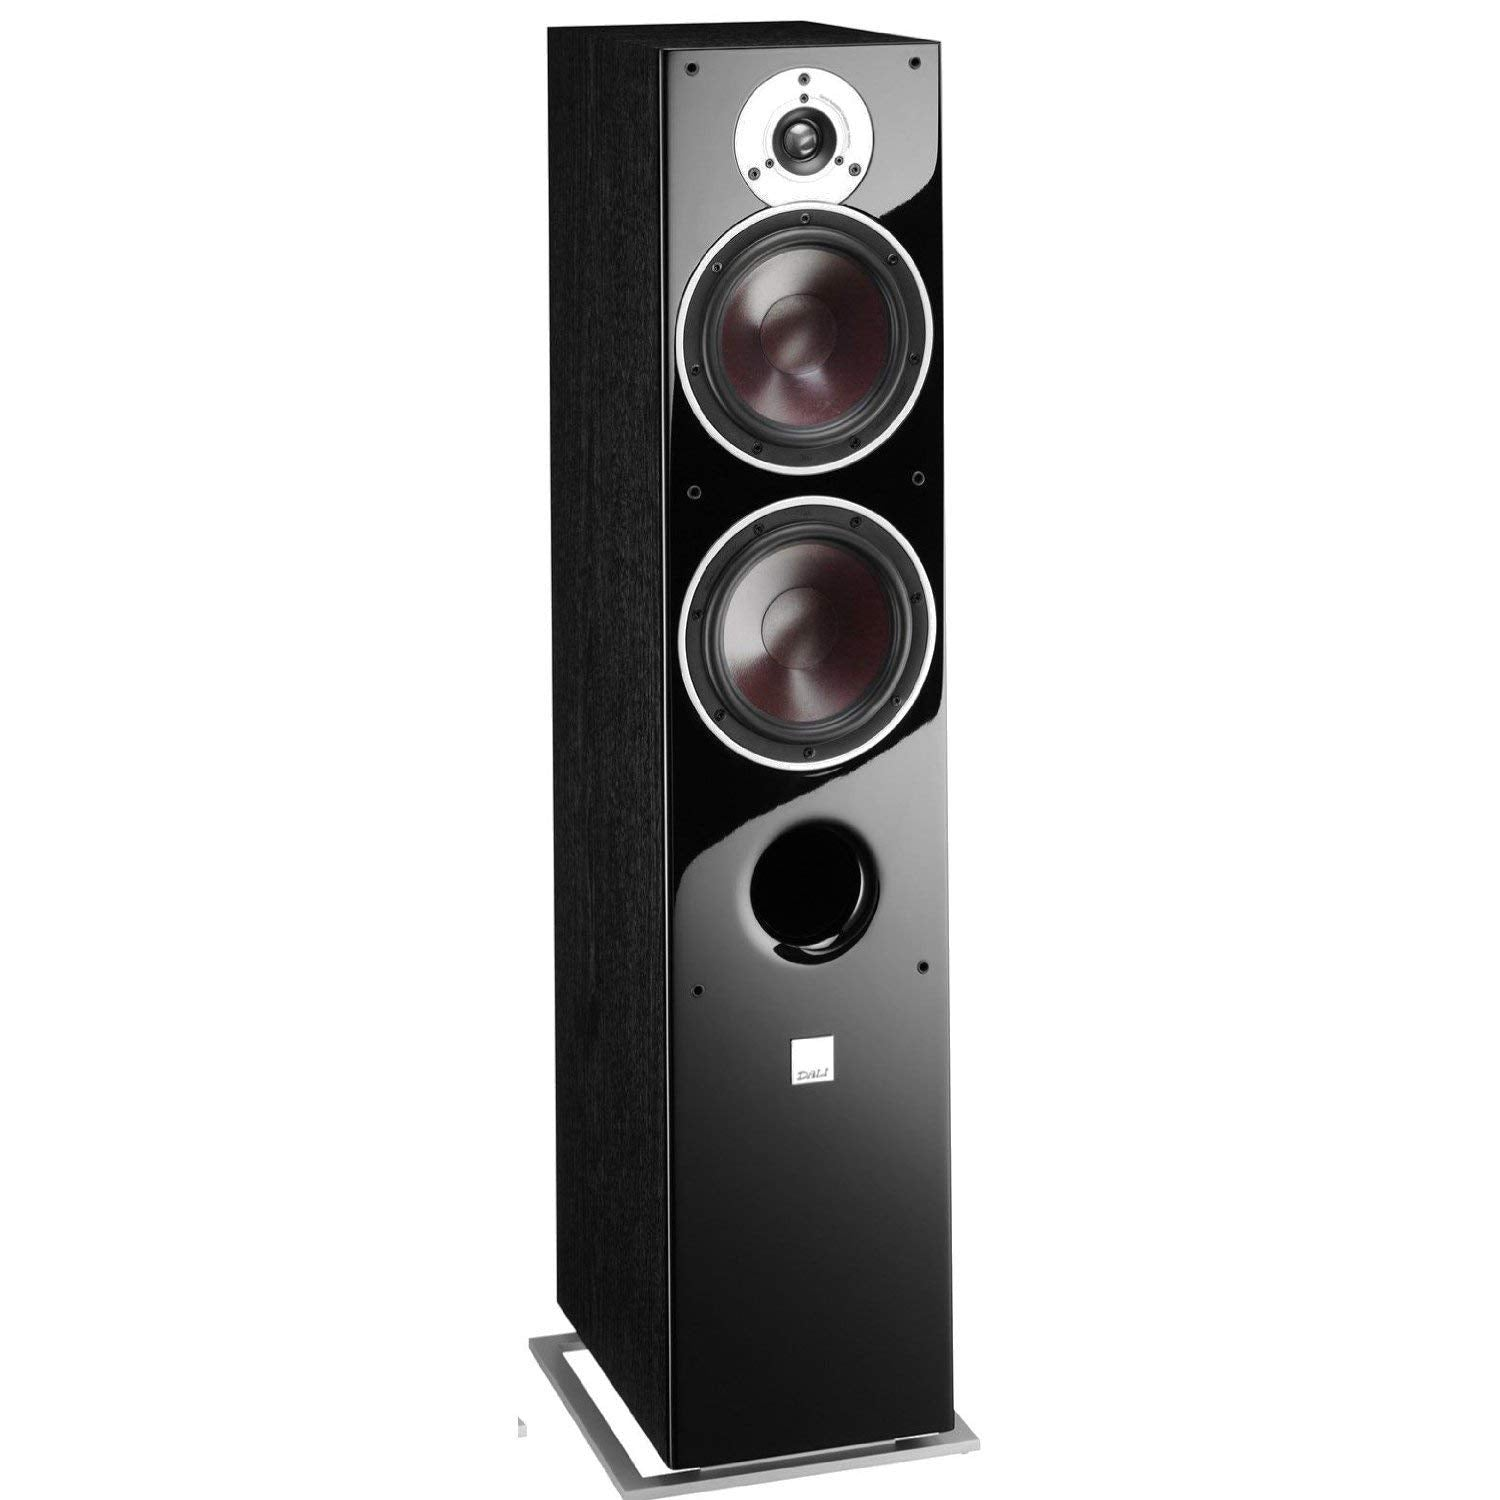 Dali Zensor 7 Floorstanding Speakers - Pair, Dali Speakers, Floor Standing Speaker - AVStore.in